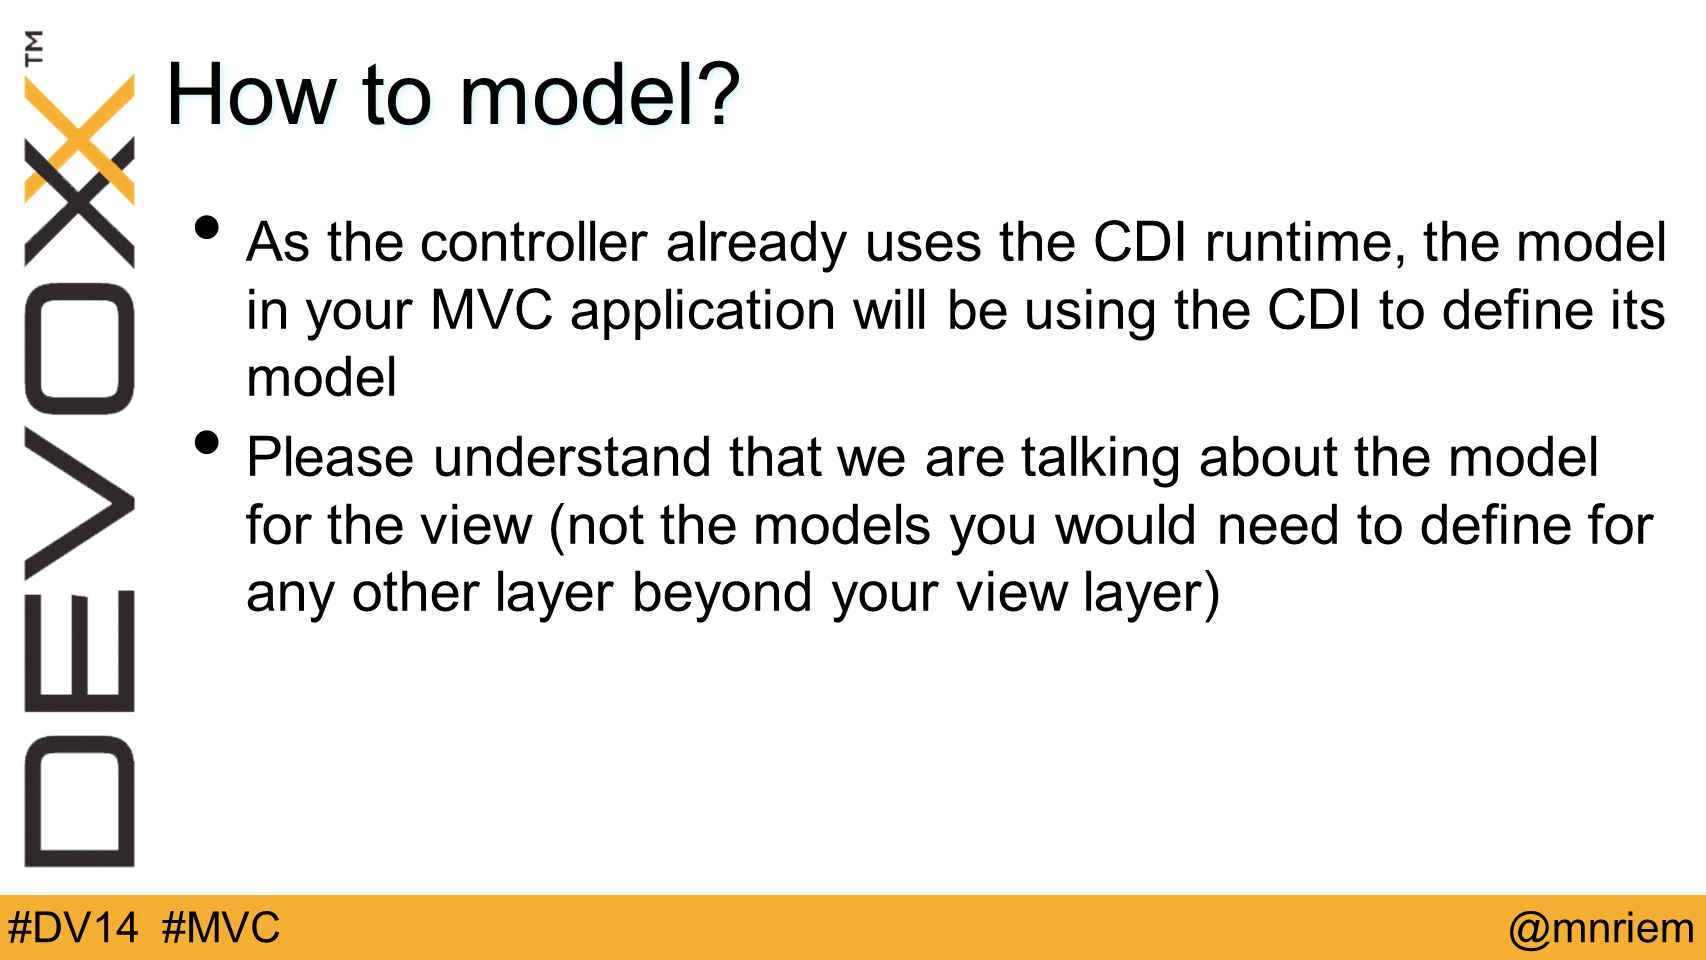 @mnriem#DV14 #MVC How to model? As the controller already uses the CDI runtime, the model in your MVC application will be using the CDI to define its